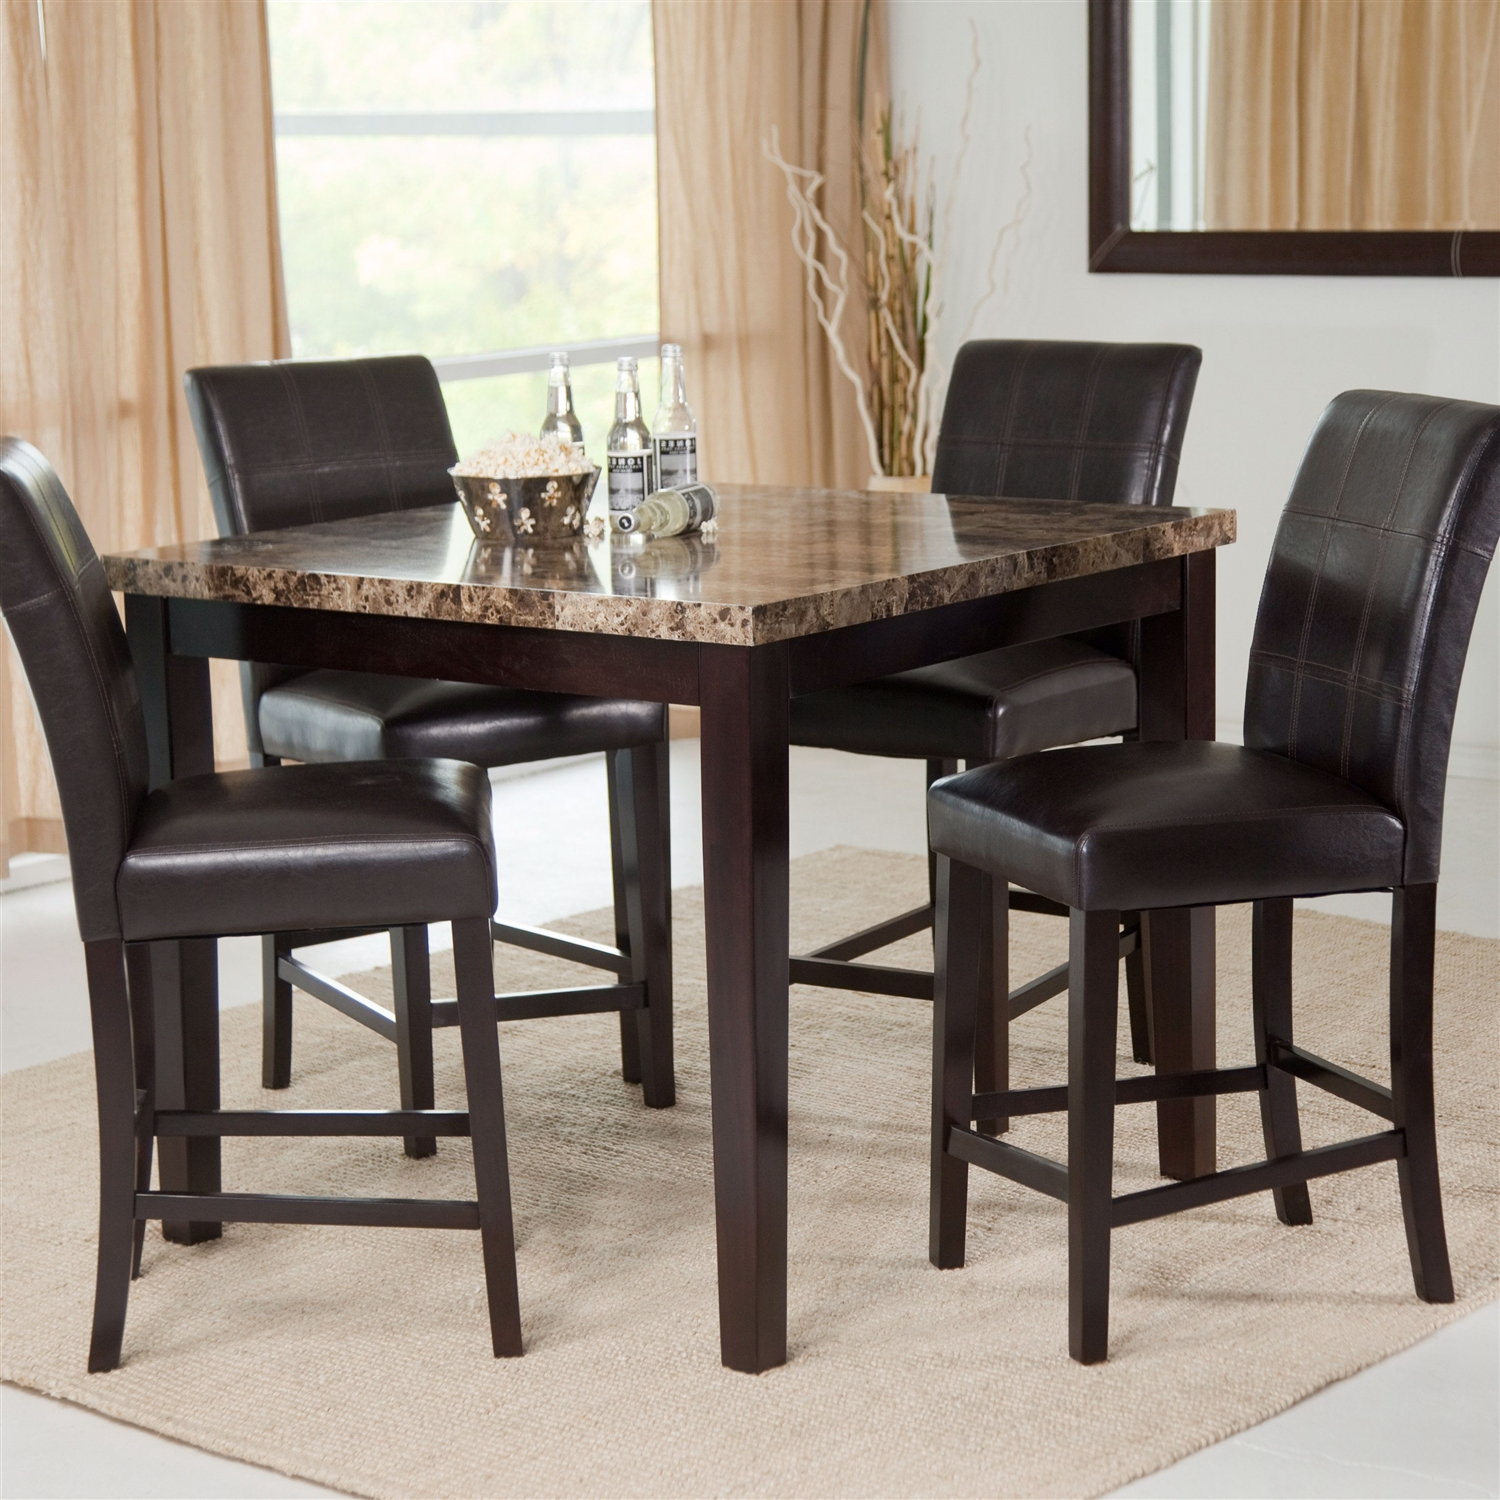 Counter Height 5 Piece Dining Set With Faux Marble Top Table And 4 Faux  Leather